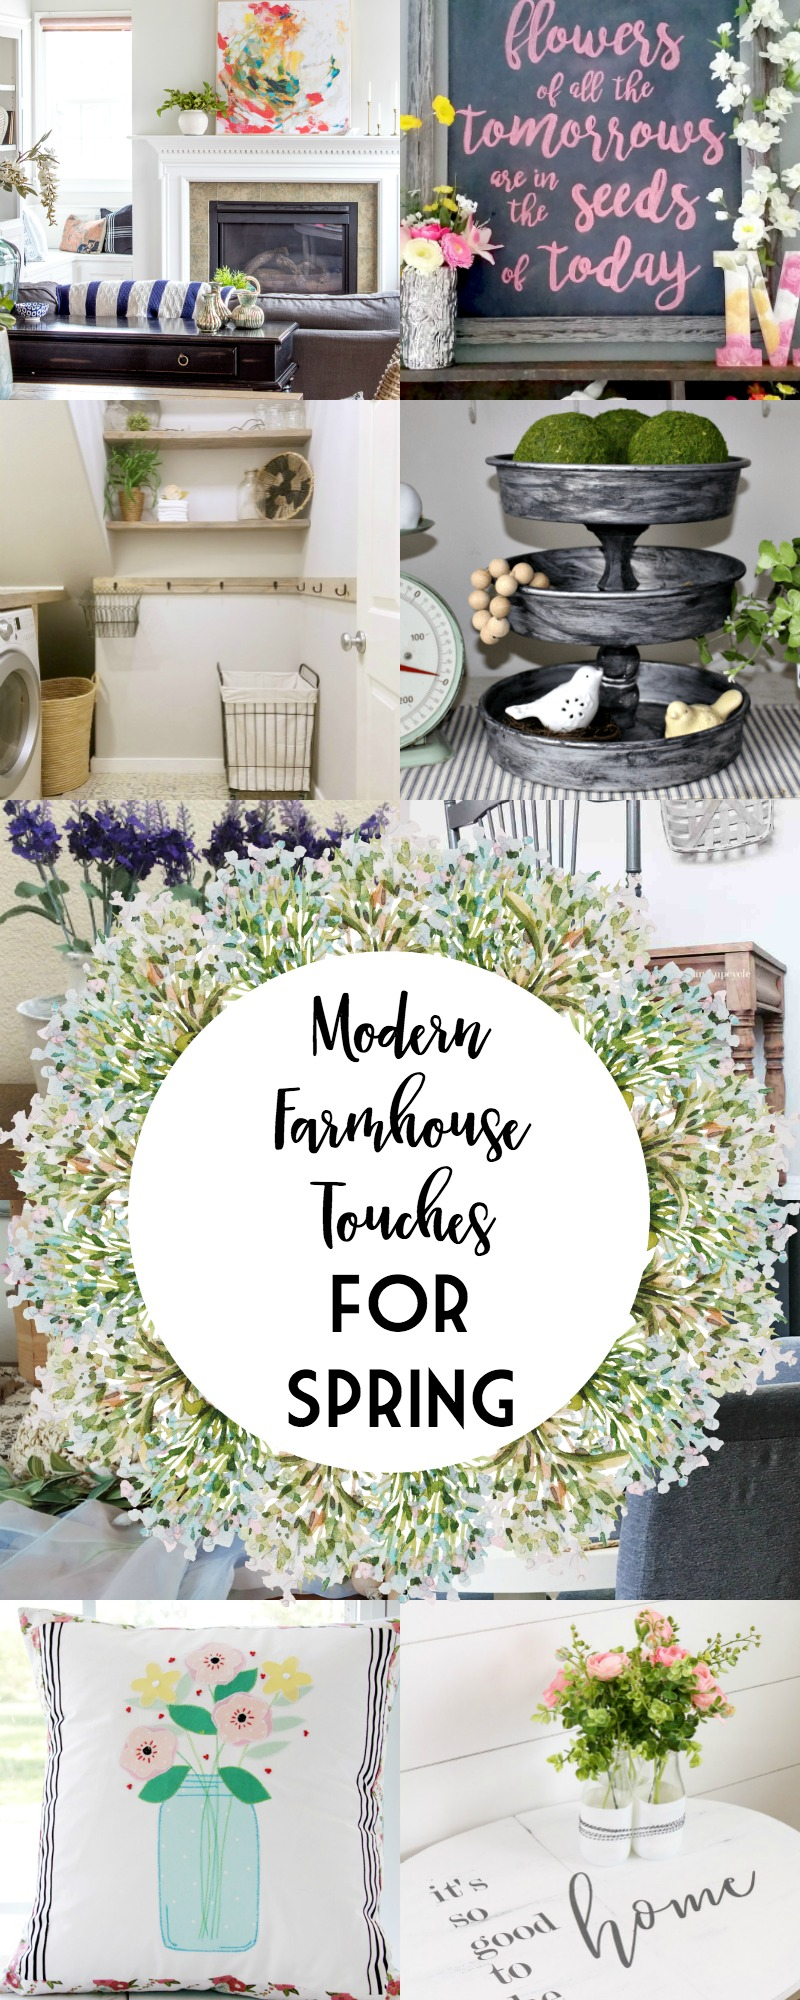 12 Modern Farmhouse Touches for Spring